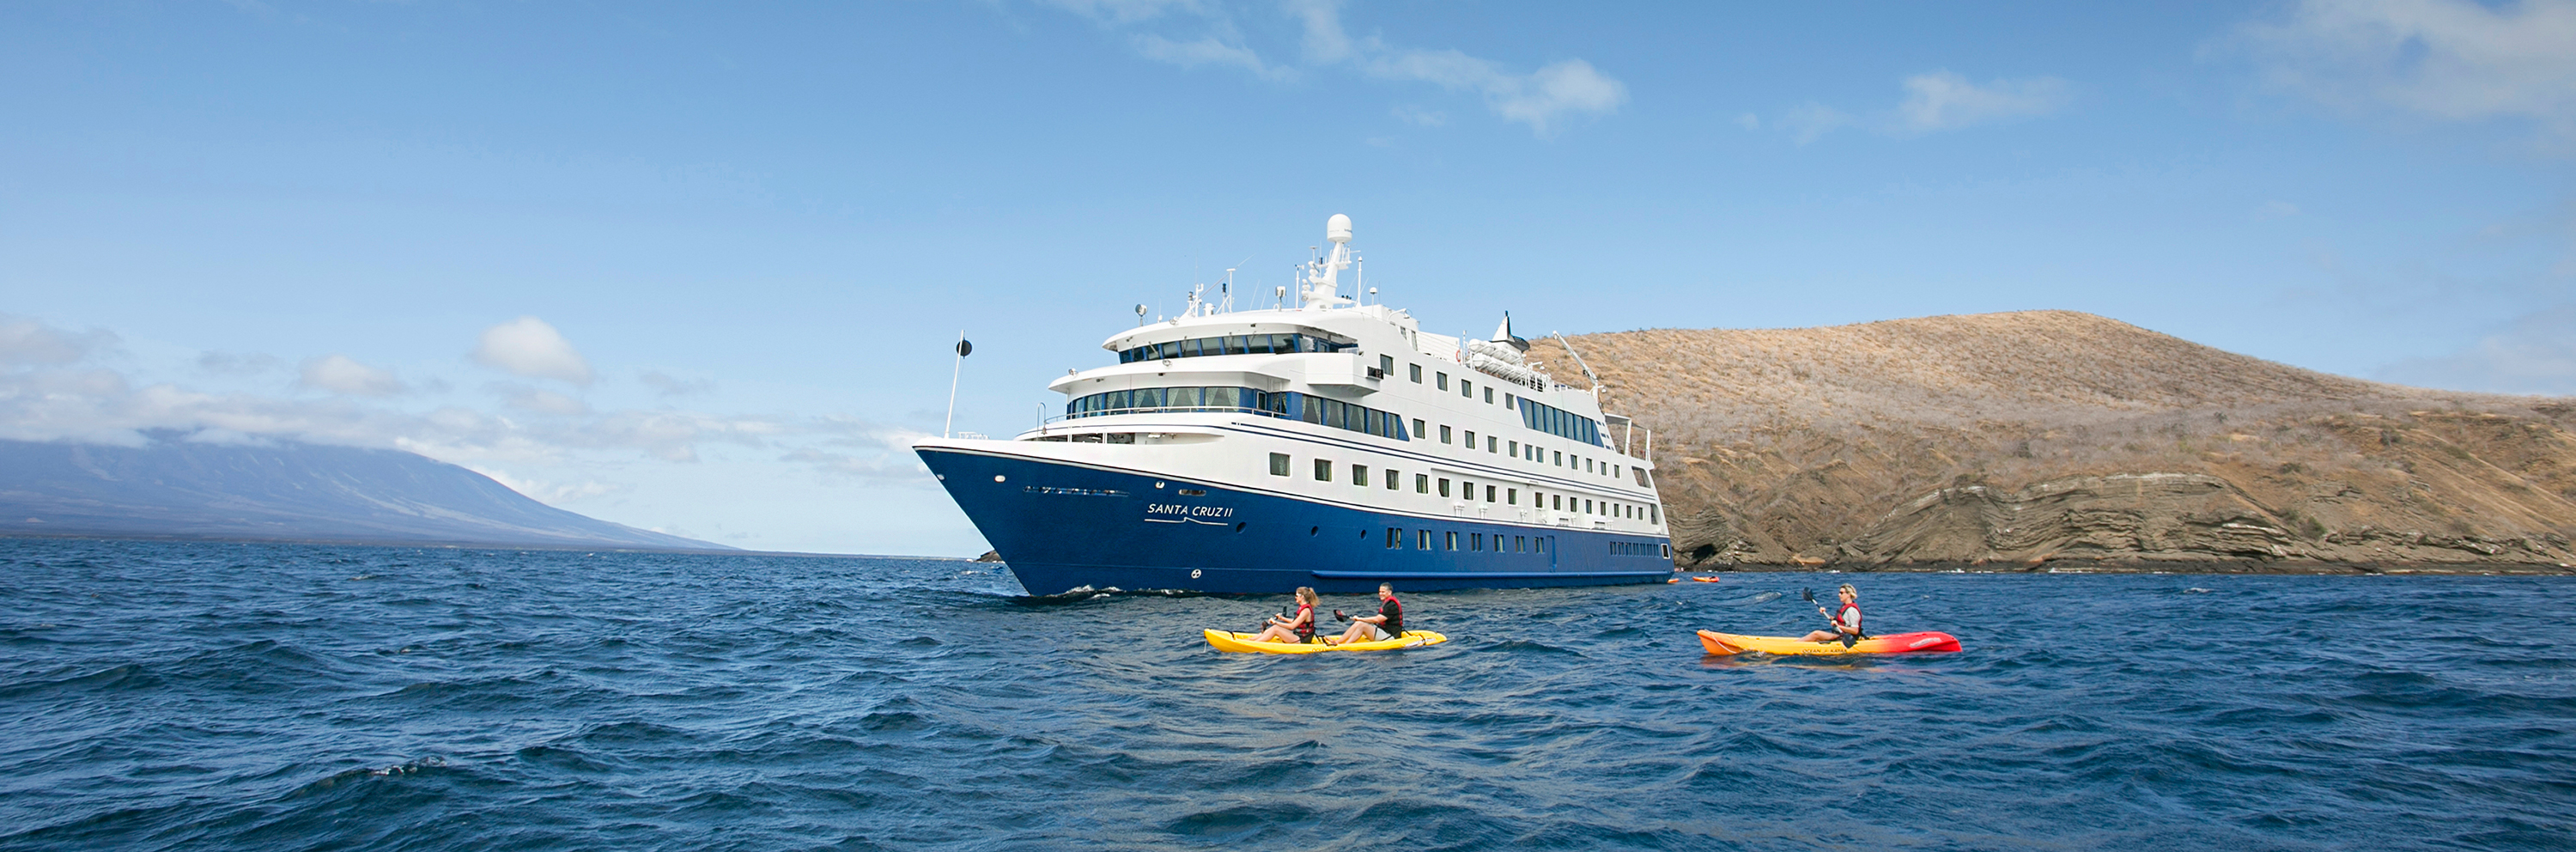 The Galapagos Islands aboard Santa Cruz II - Activities - Islands - Wildlife